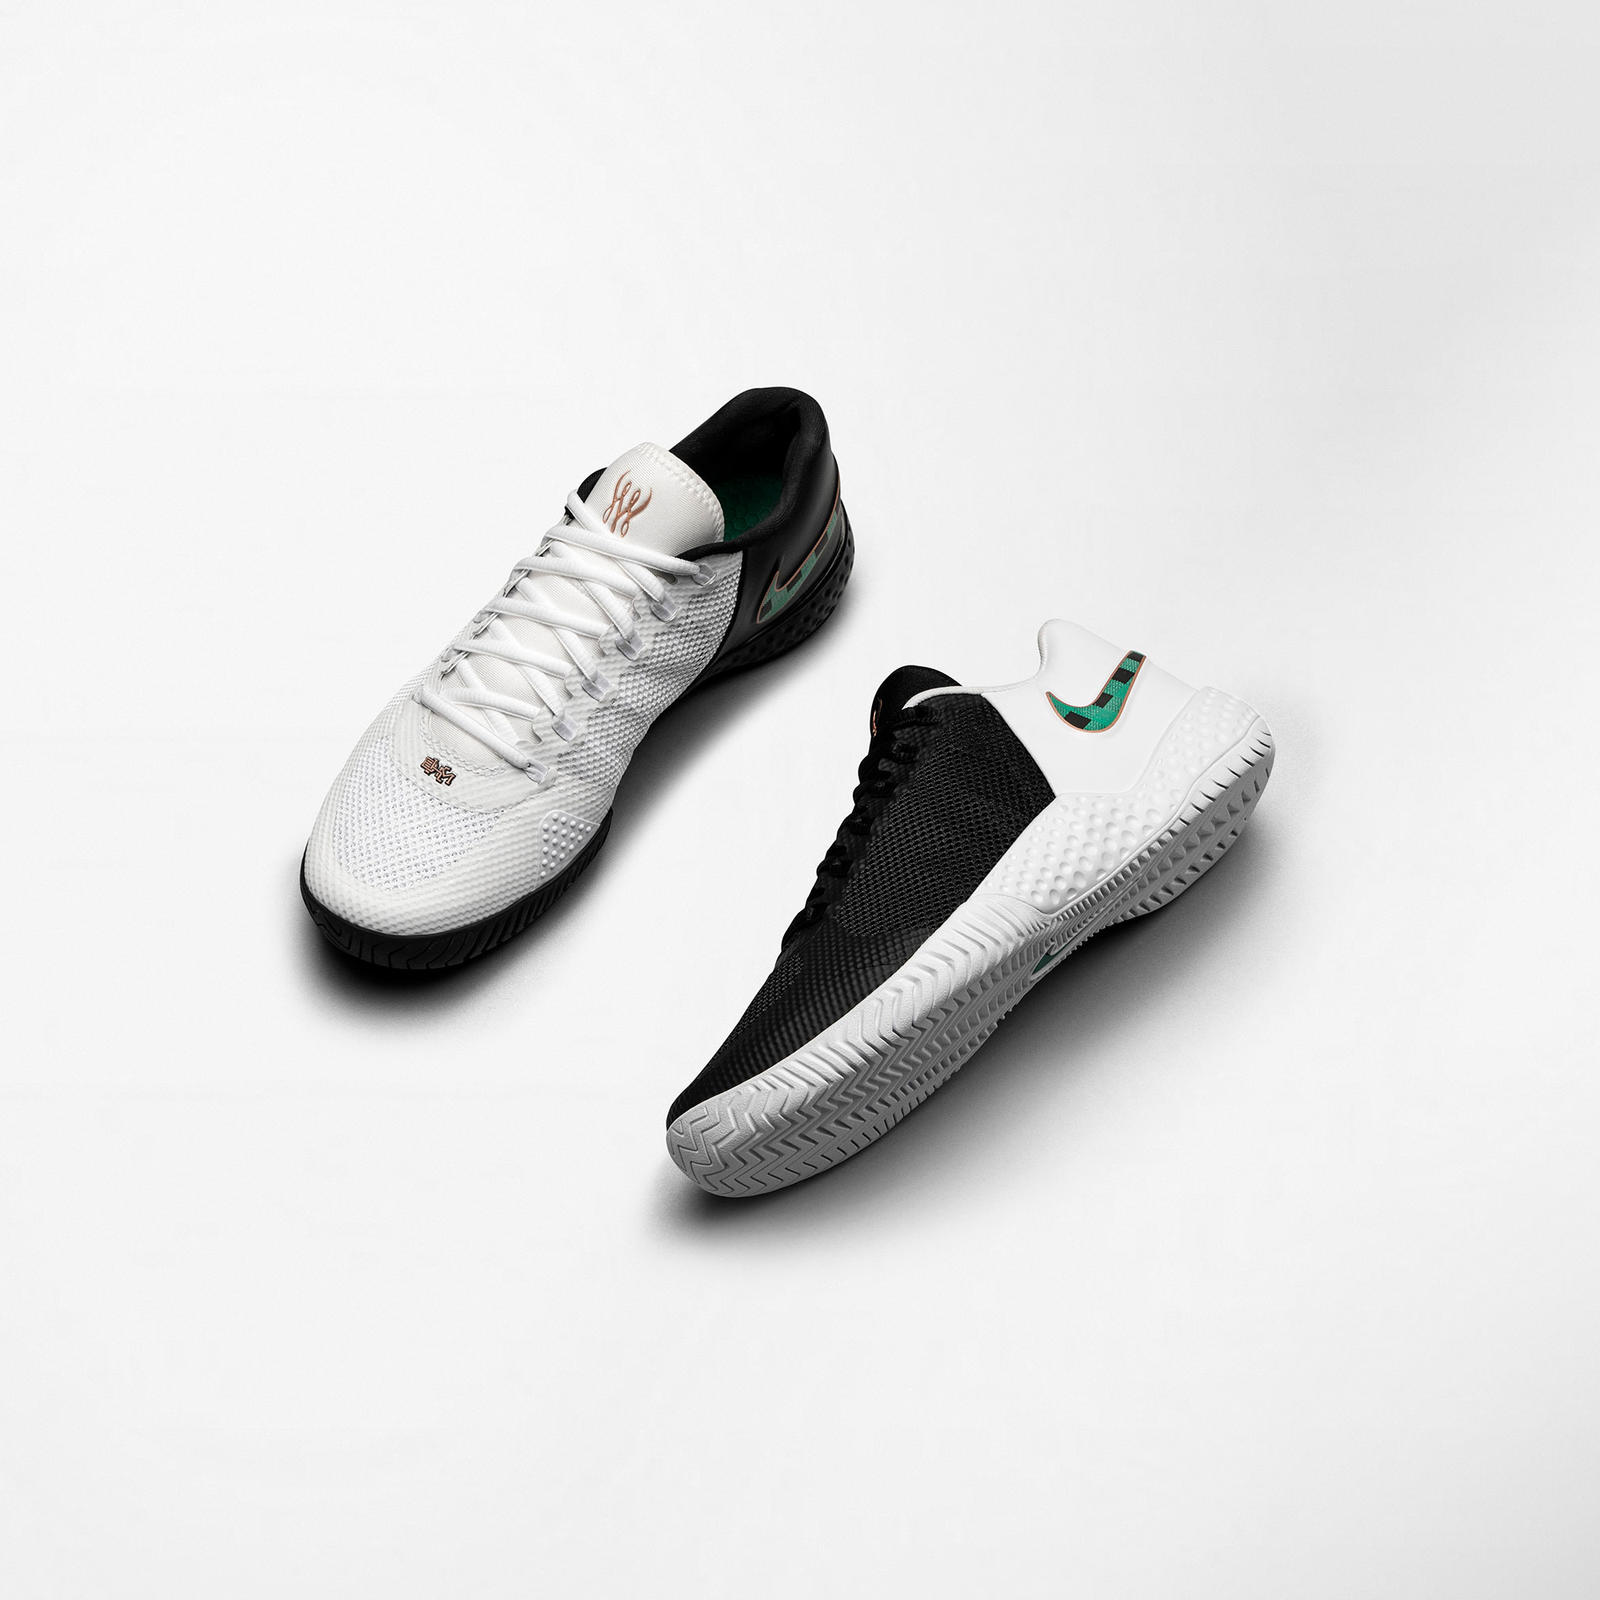 97adb0af4171 Nike Black History Month Collection 2019 - Nike News